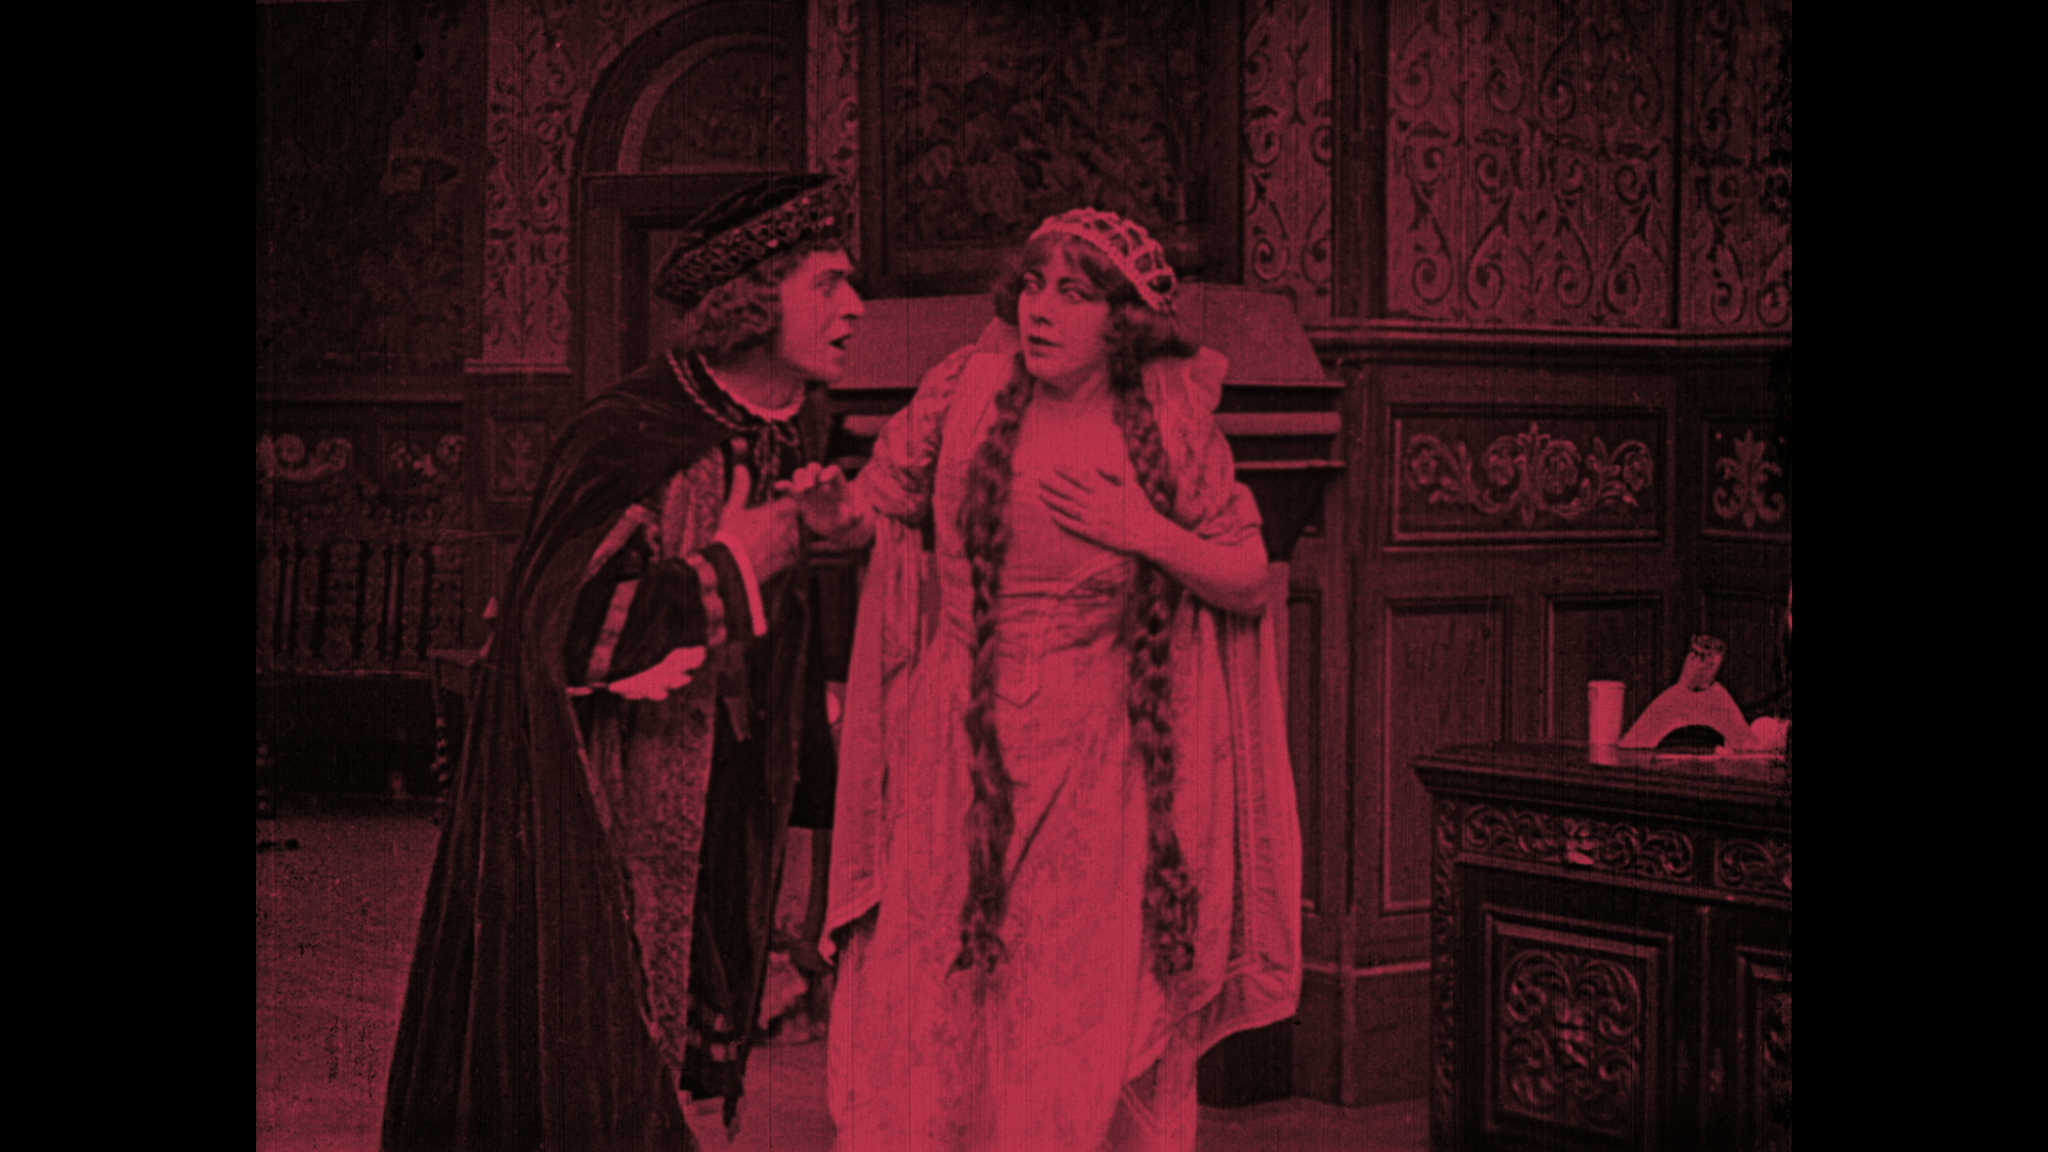 Thesis on silent films   Research paper Help Tony Harkins